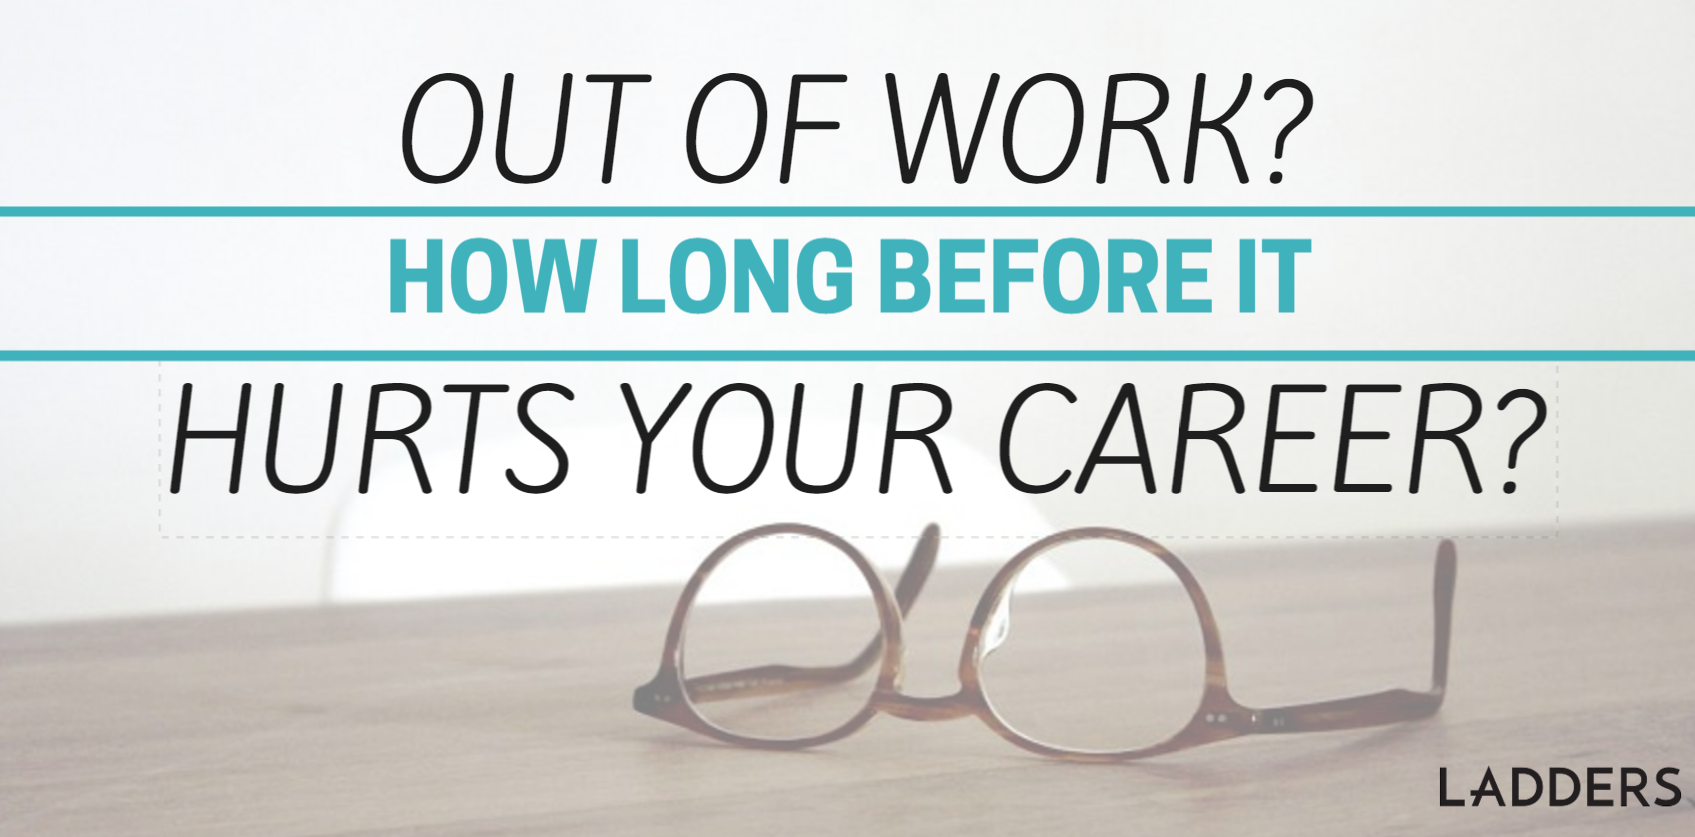 Out of Work? How Long Before It Hurts Your Career? | Ladders